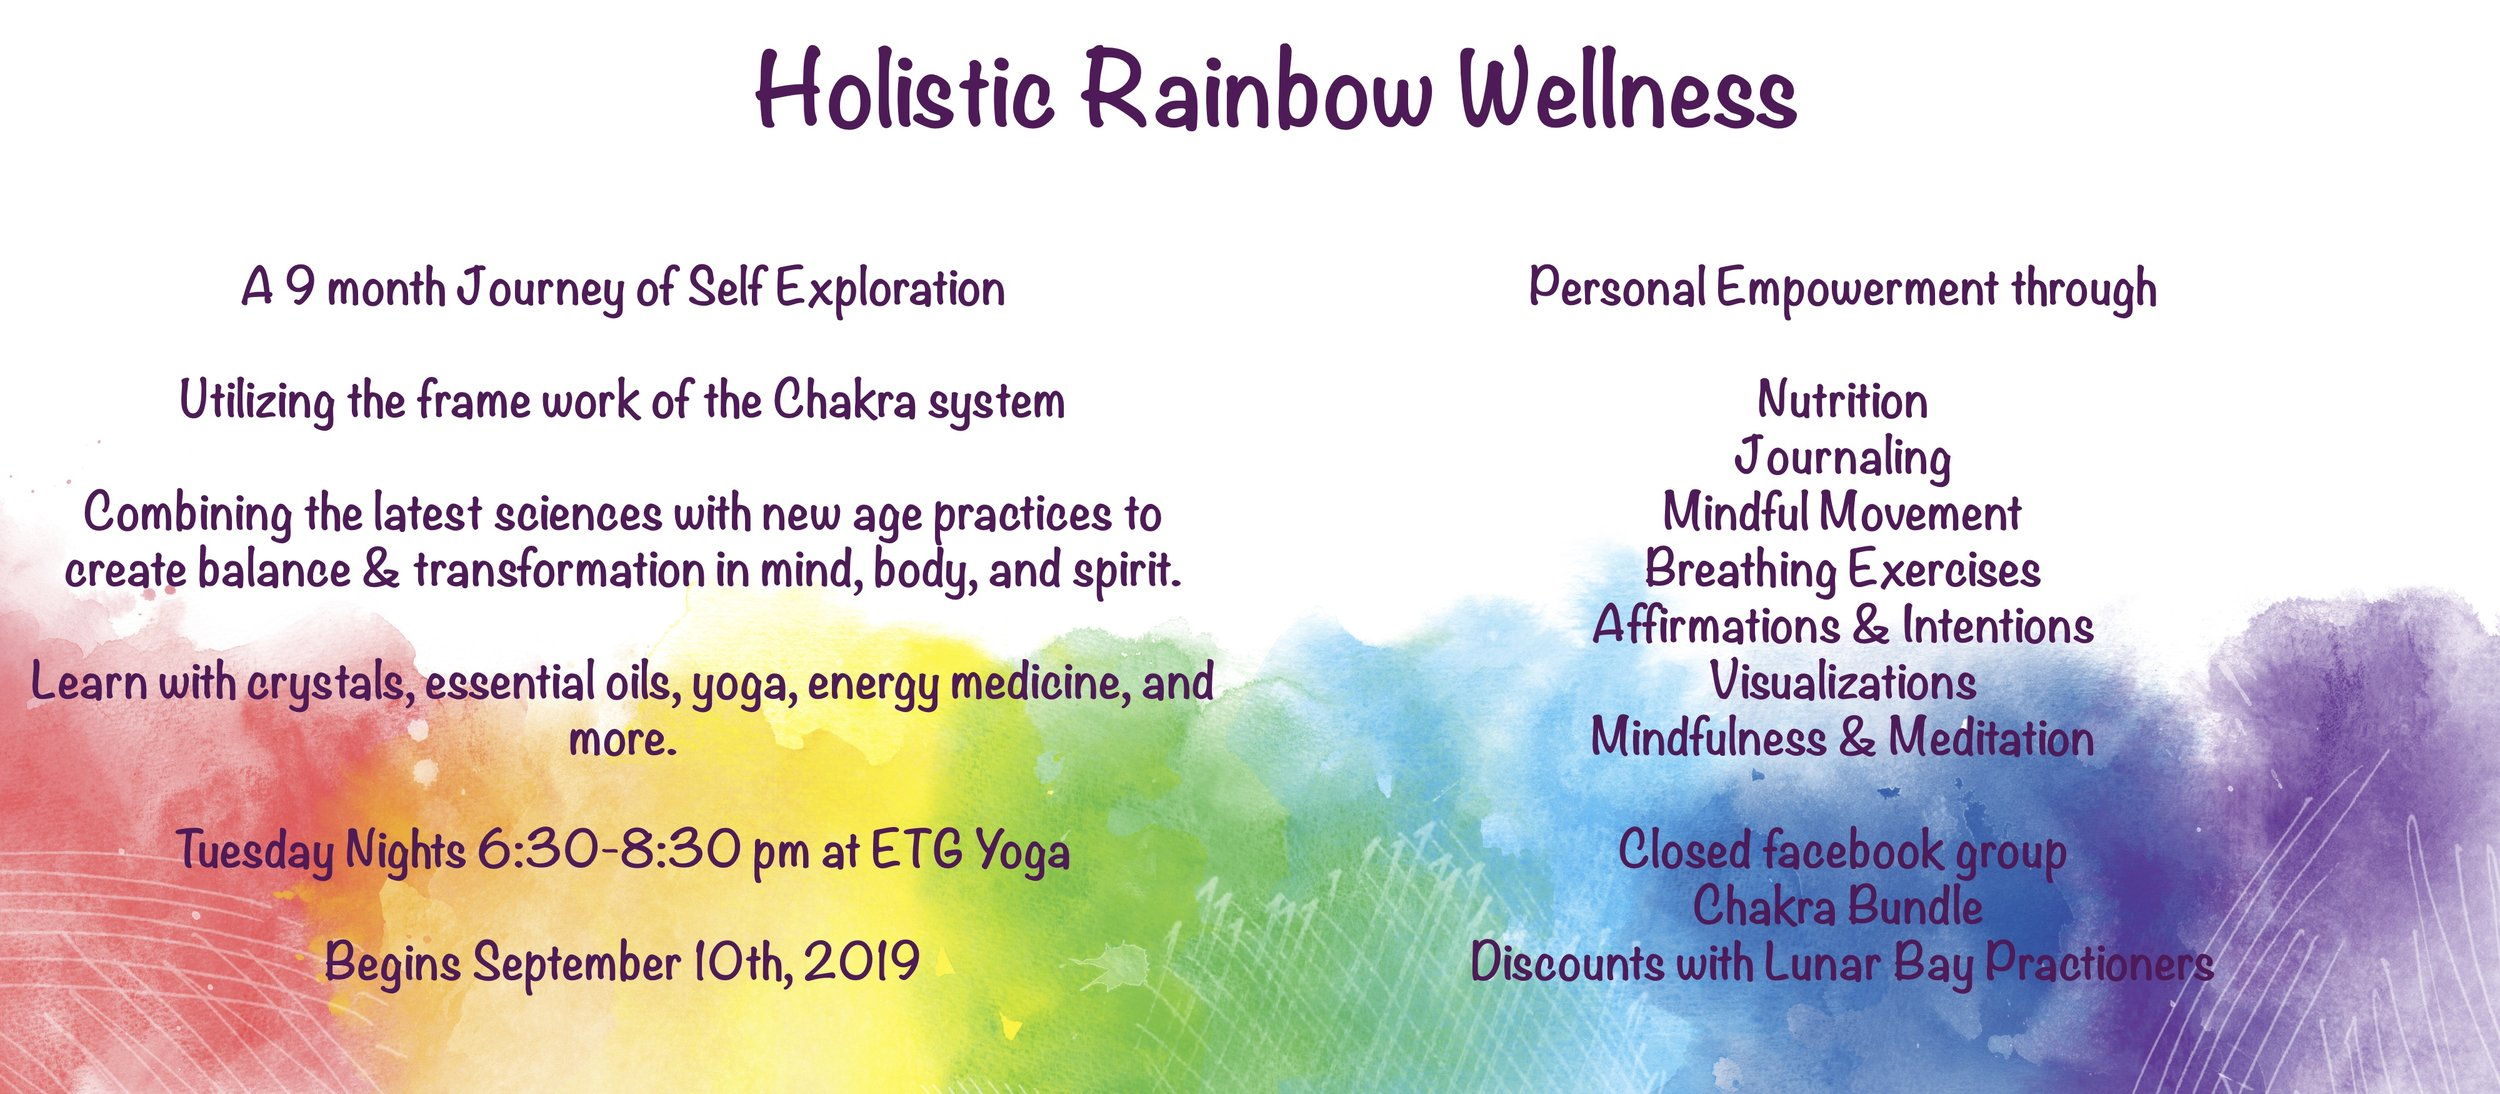 Holistic Rainbow Wellness.jpg